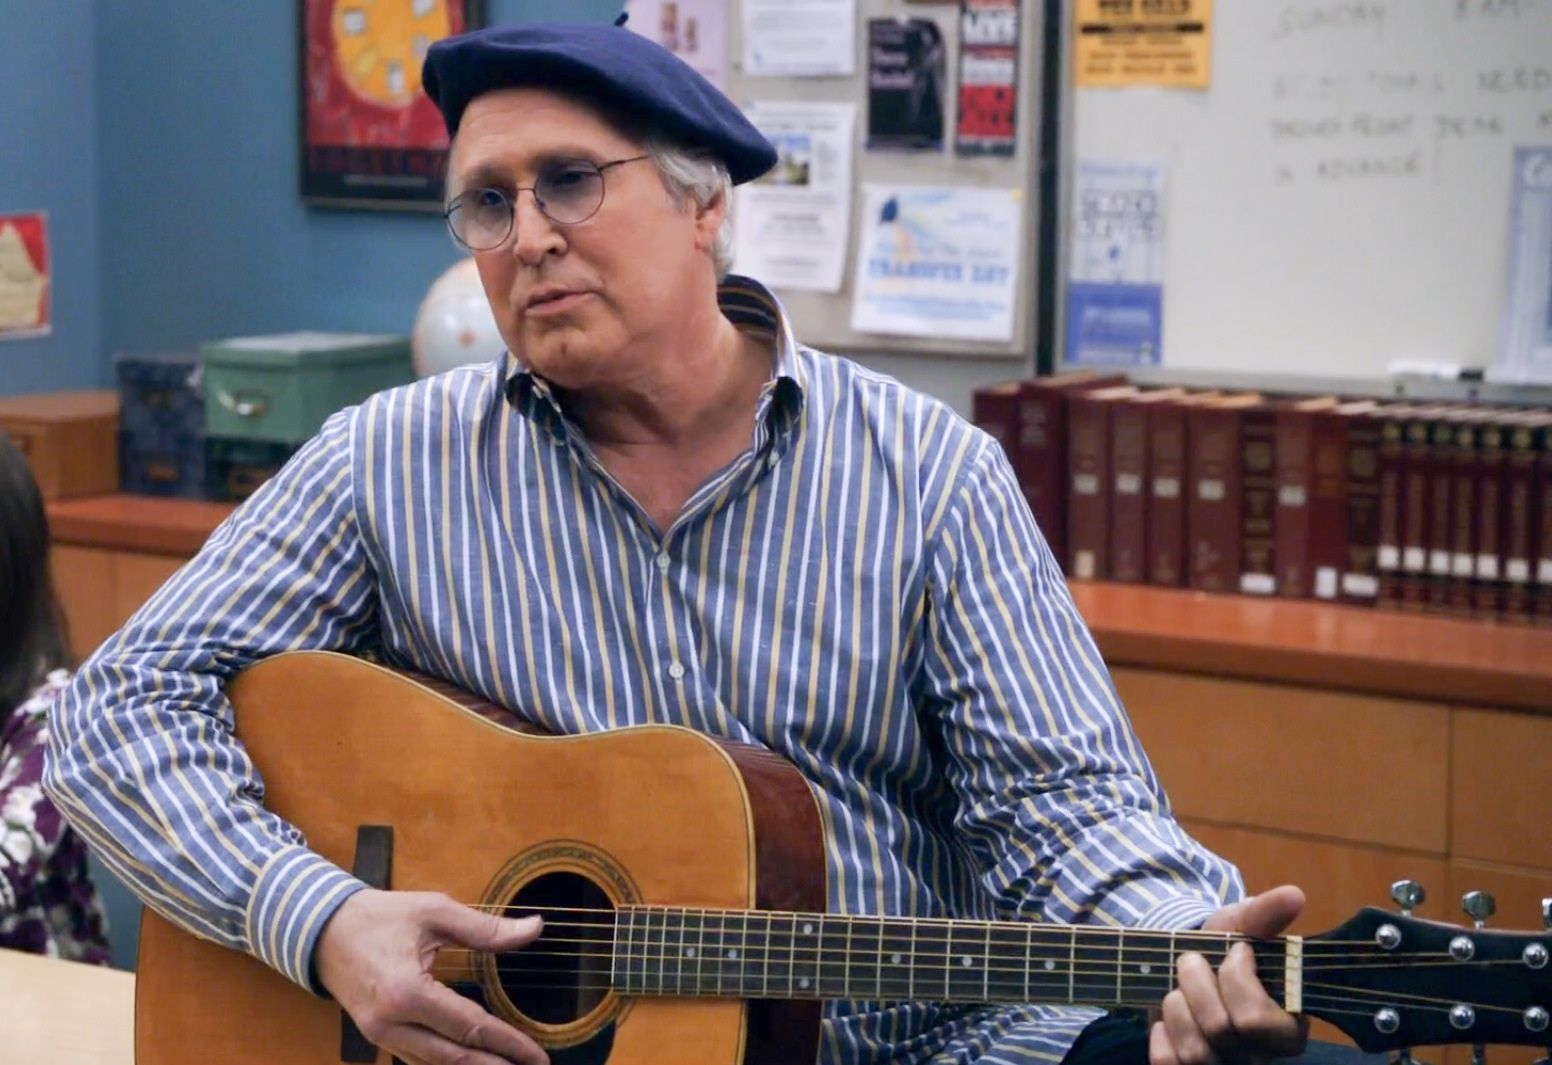 11c1 20 Things You Never Knew About Chevy Chase